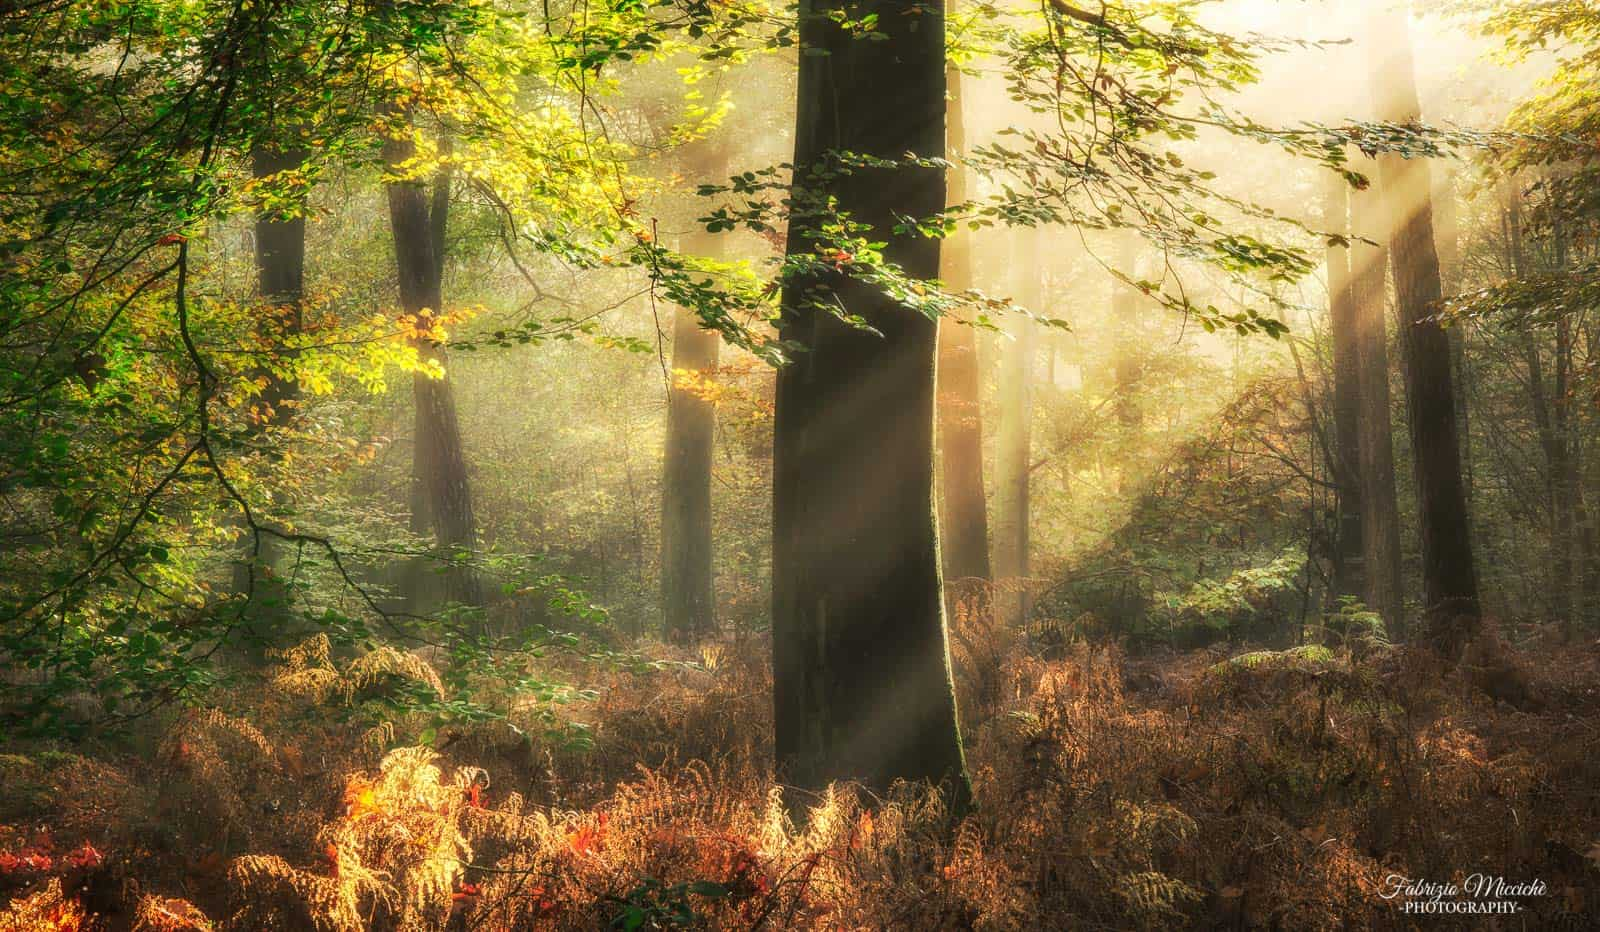 Standing in the center of the frame  – forest and nature photography